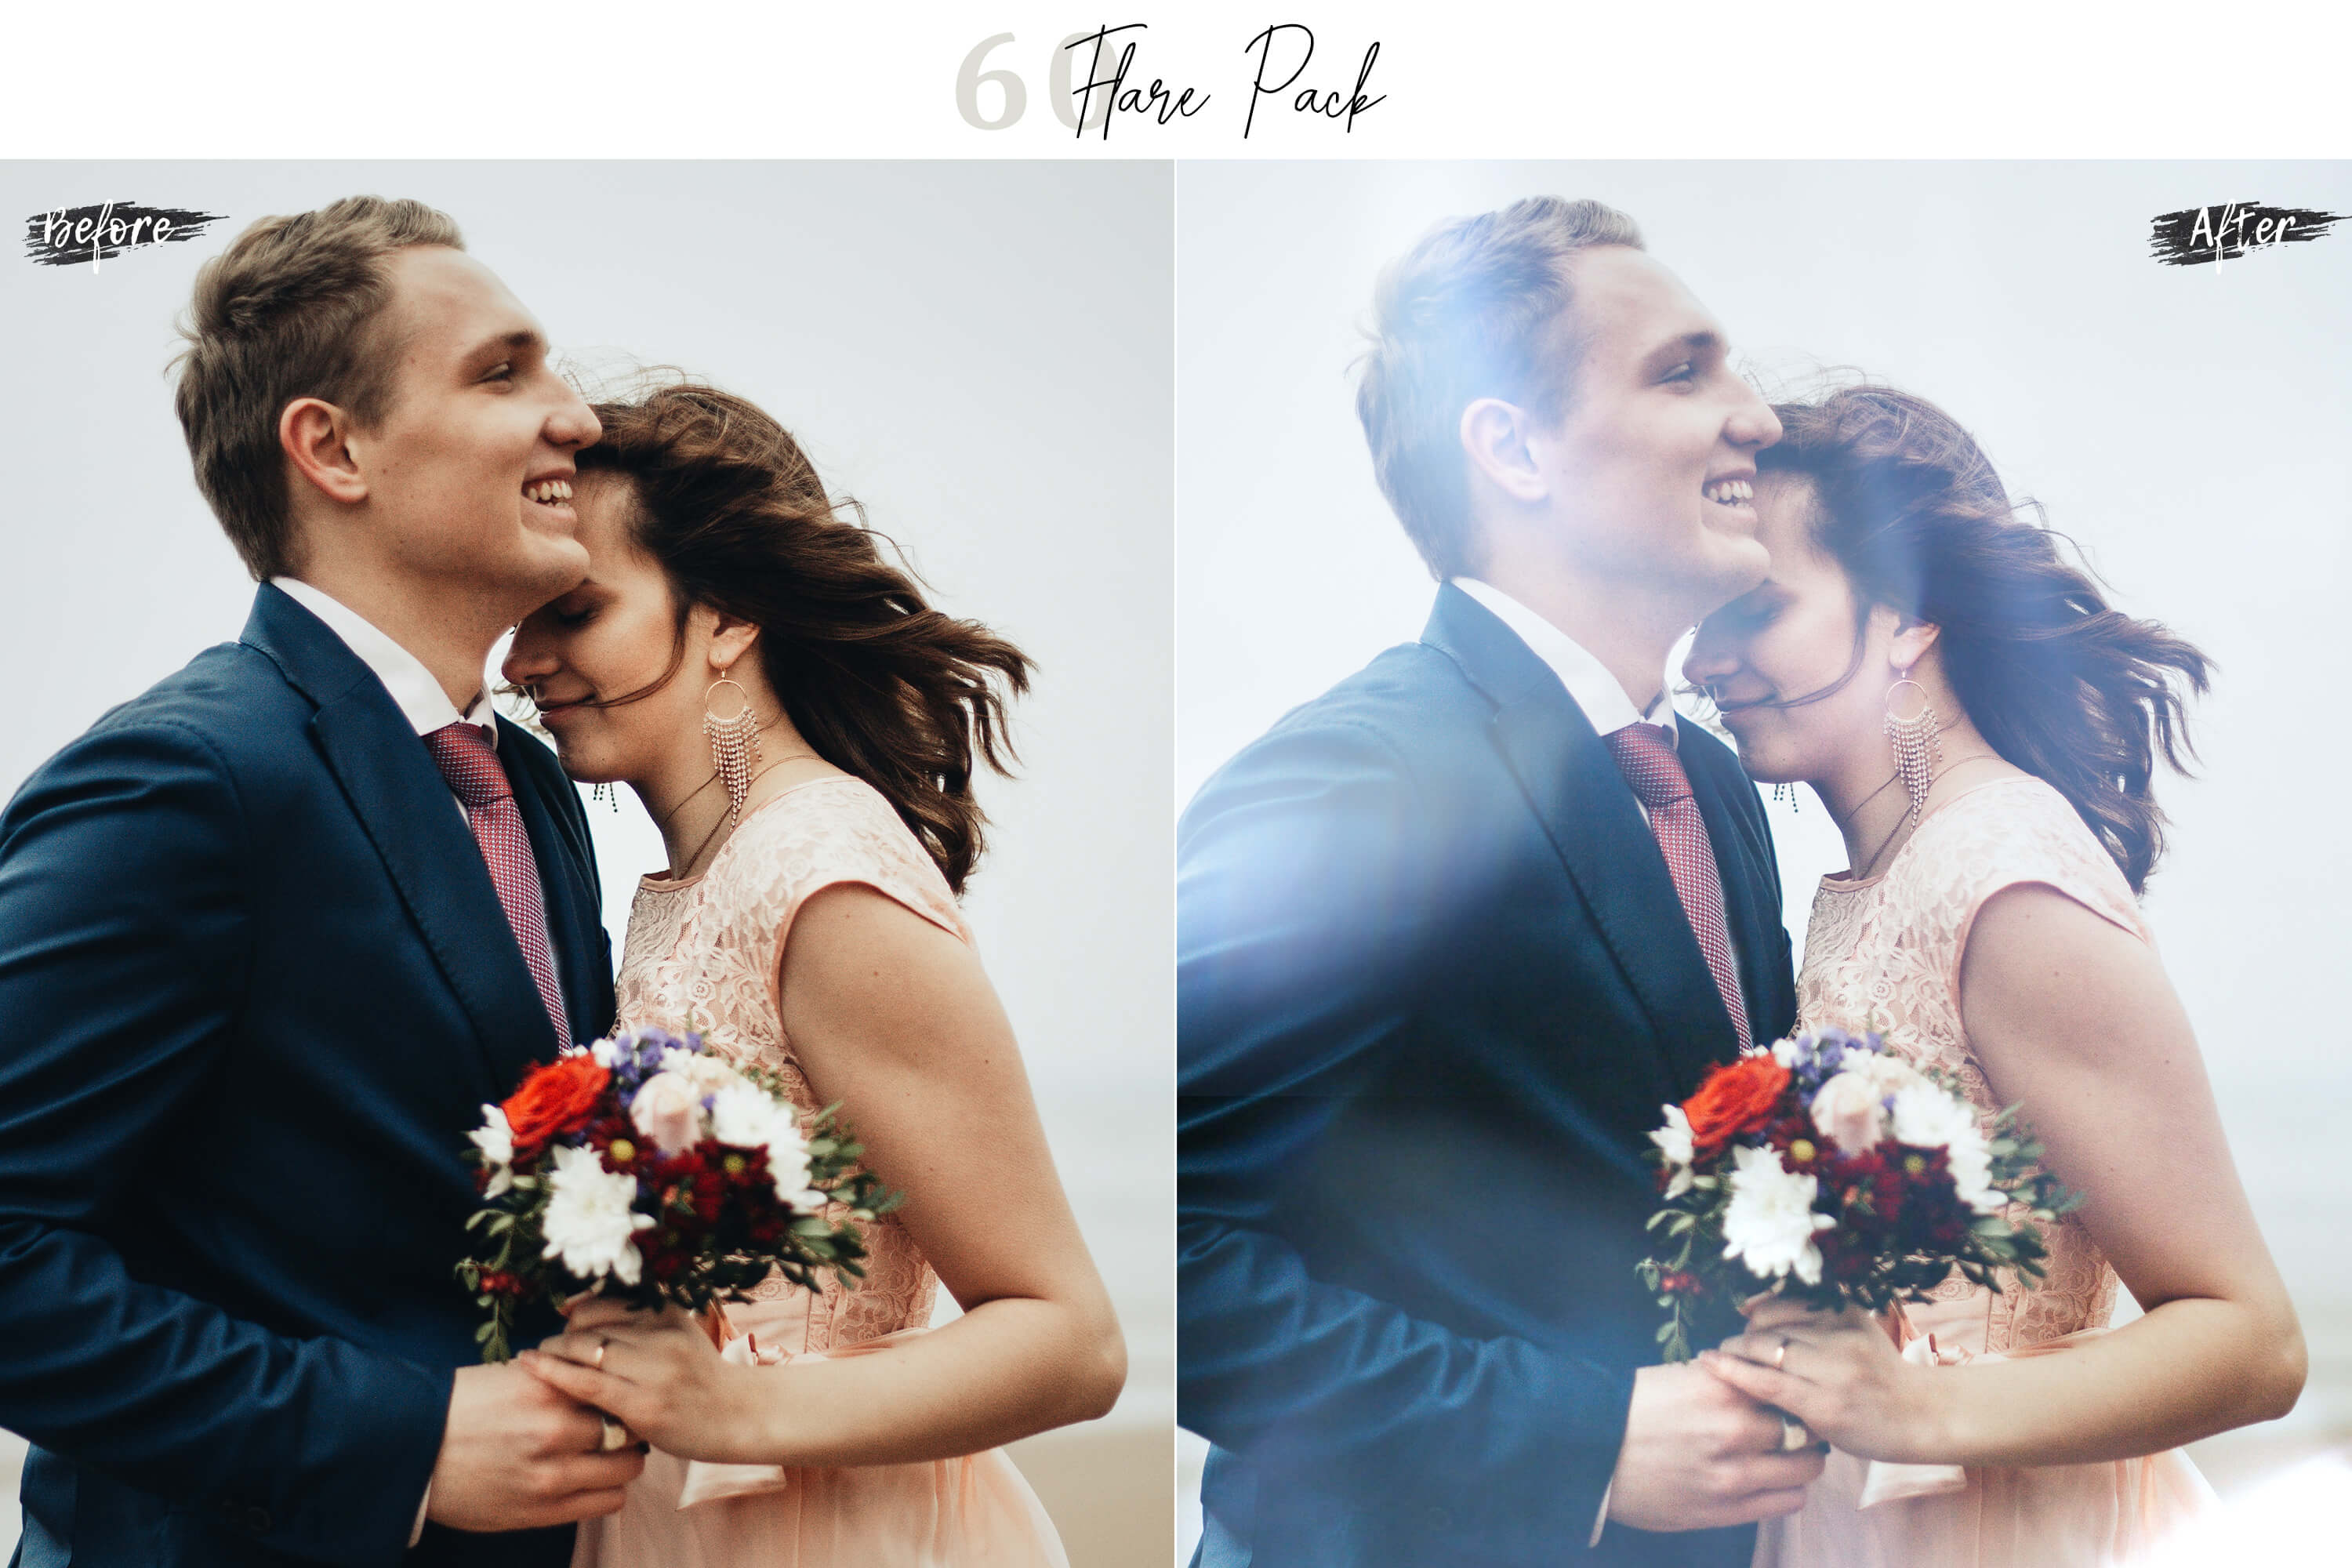 60 Flare Pack 02 lights Effect Photo Overlays example image 3